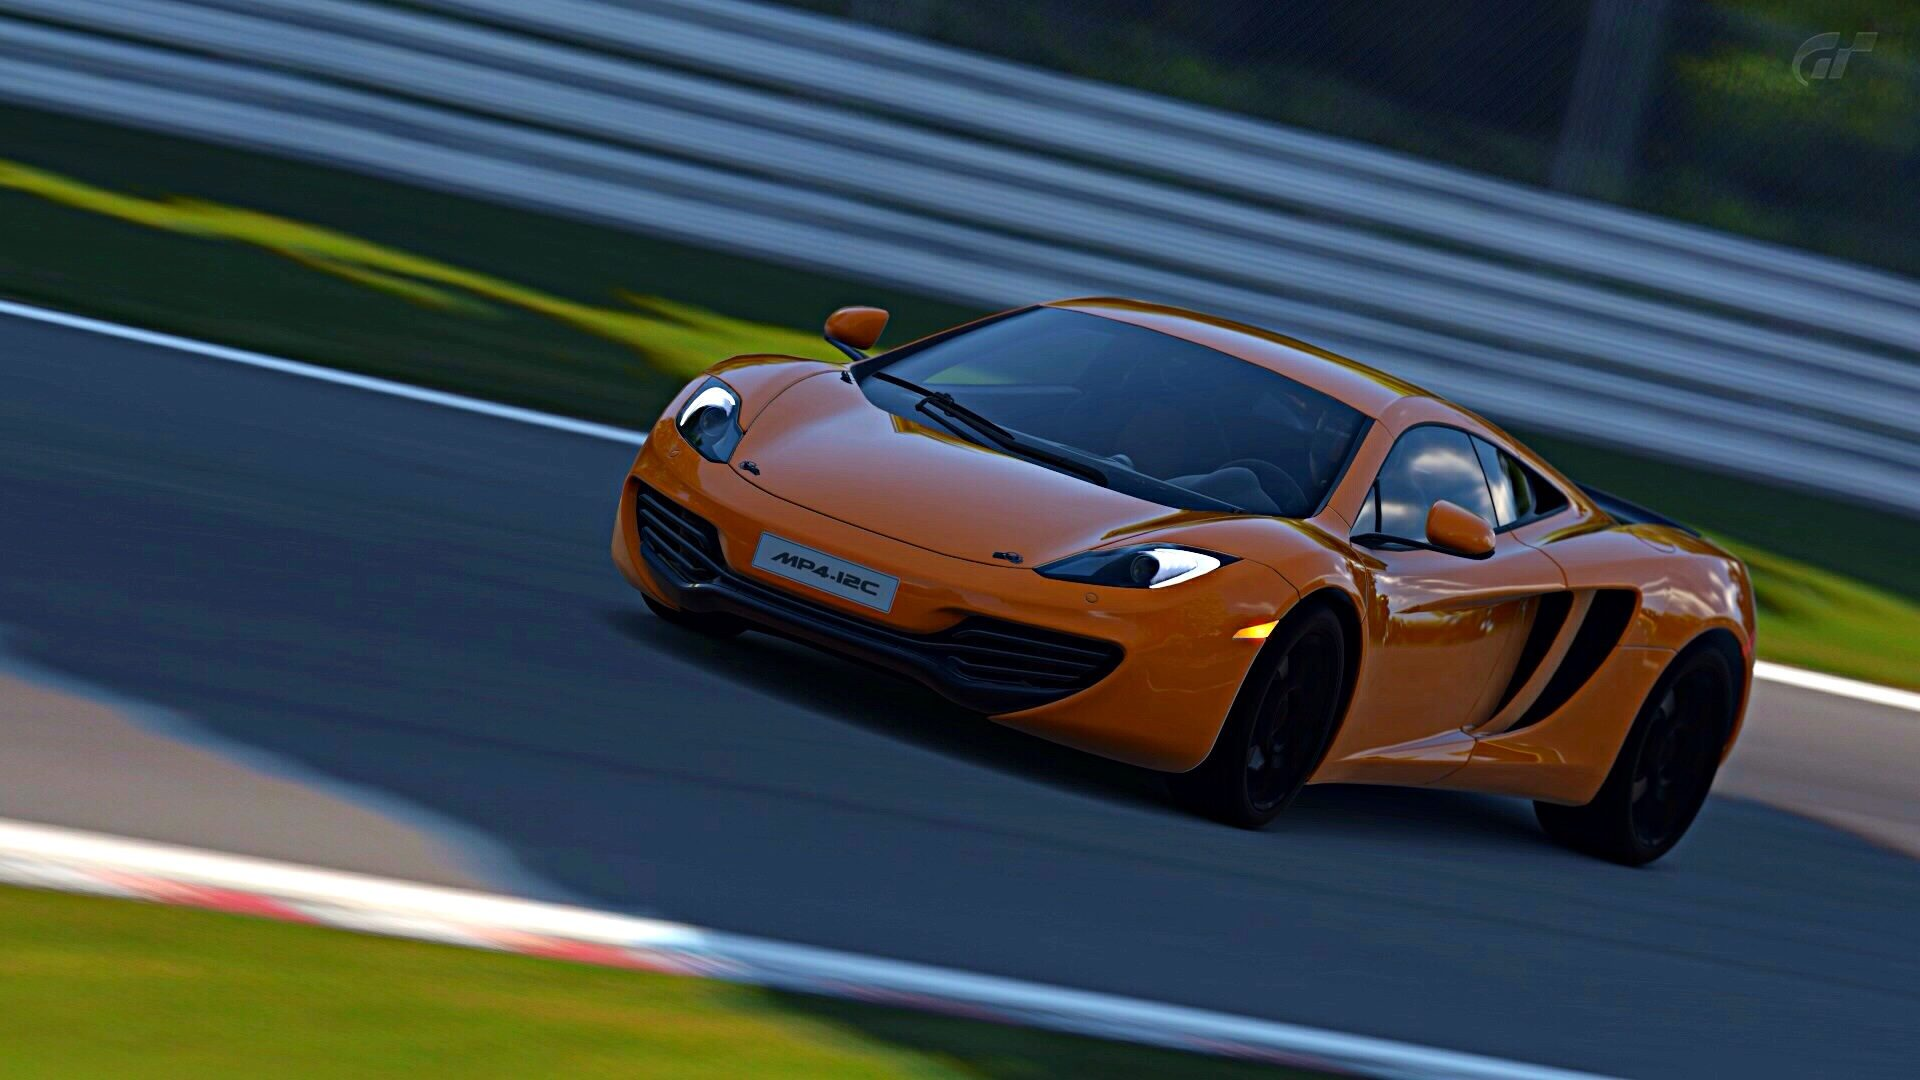 MP4-12C GTC Brands Hatch (3).jpg